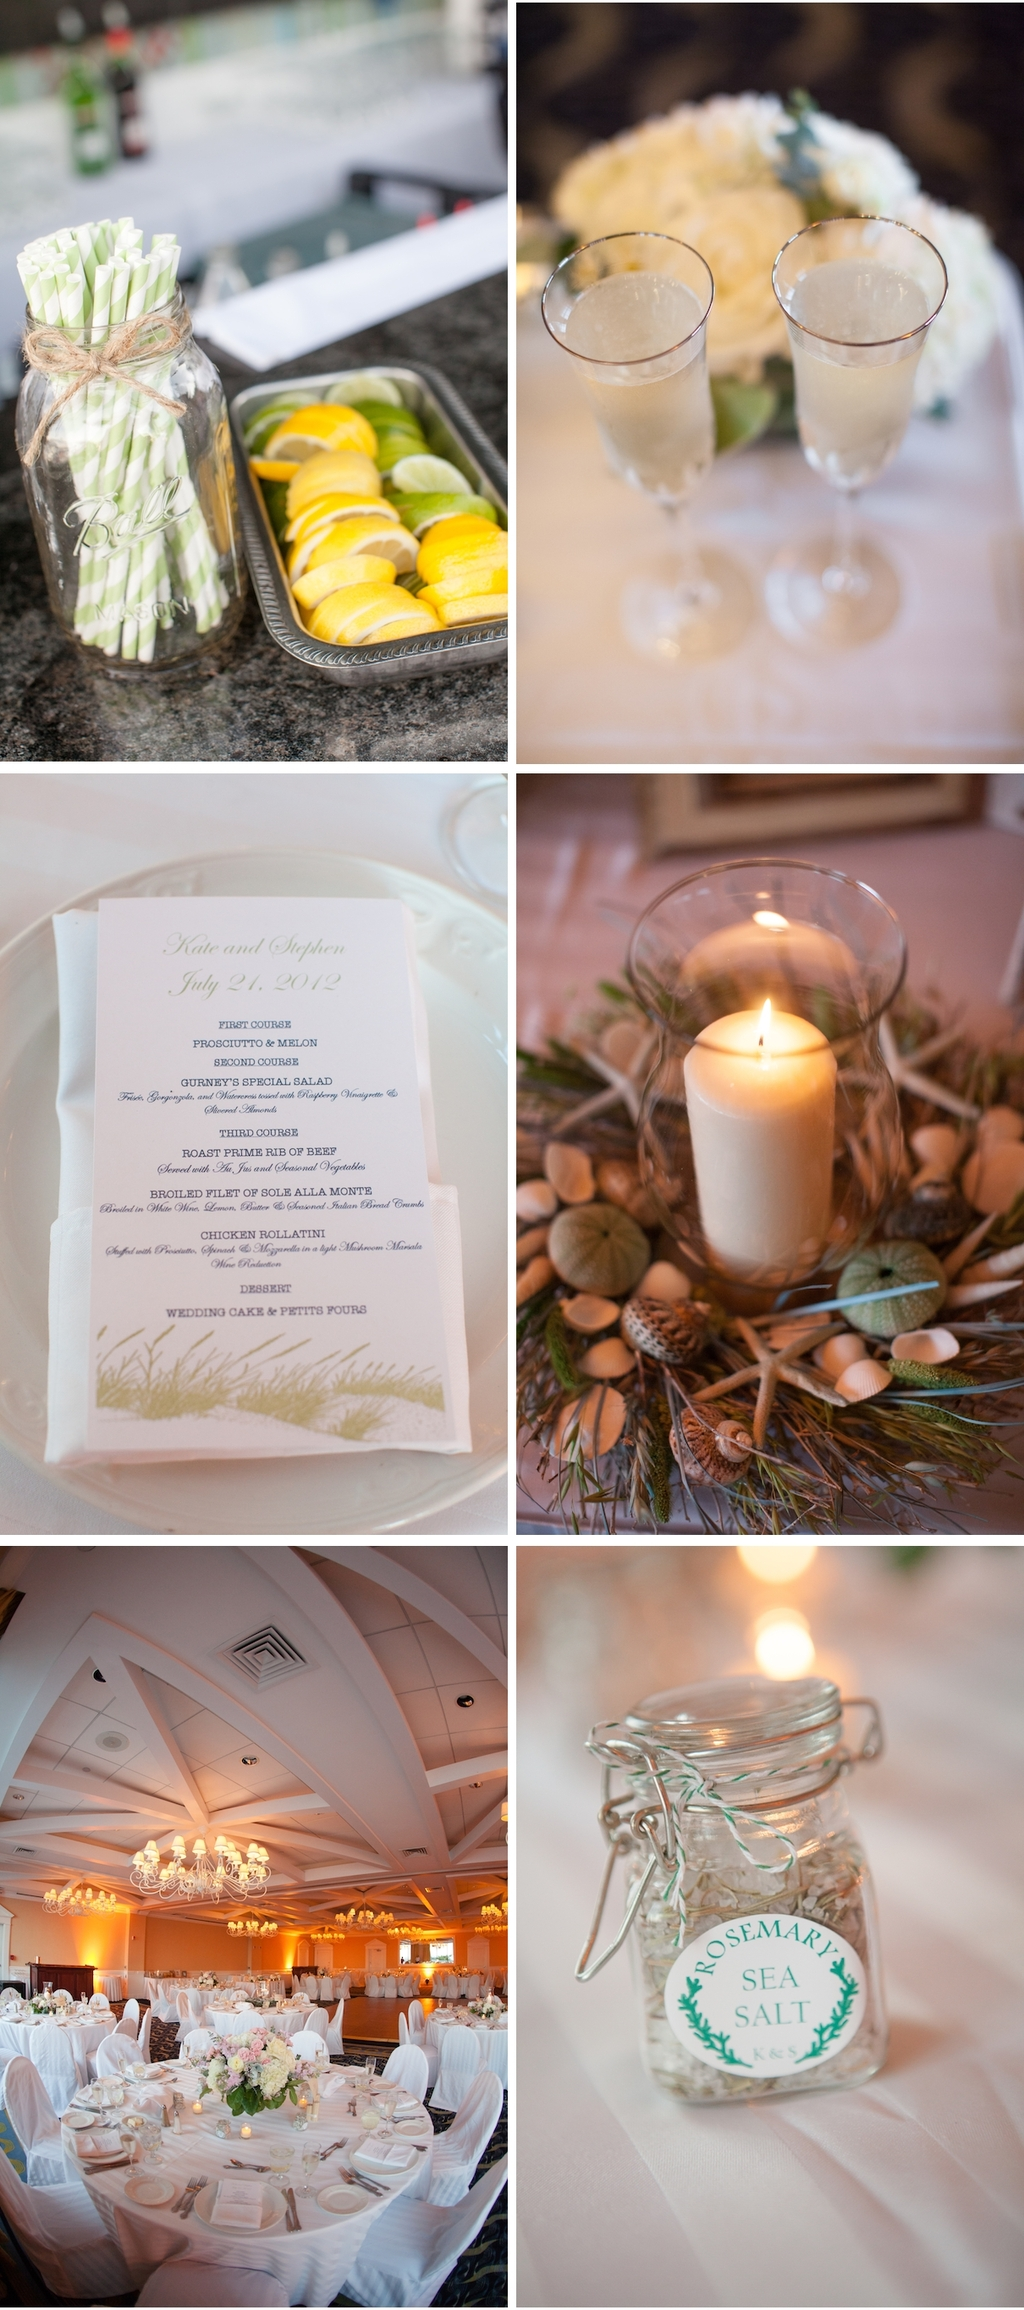 Real-wedding-long-island-throo-williams-photography-by-verdi-reception-food-detail.full